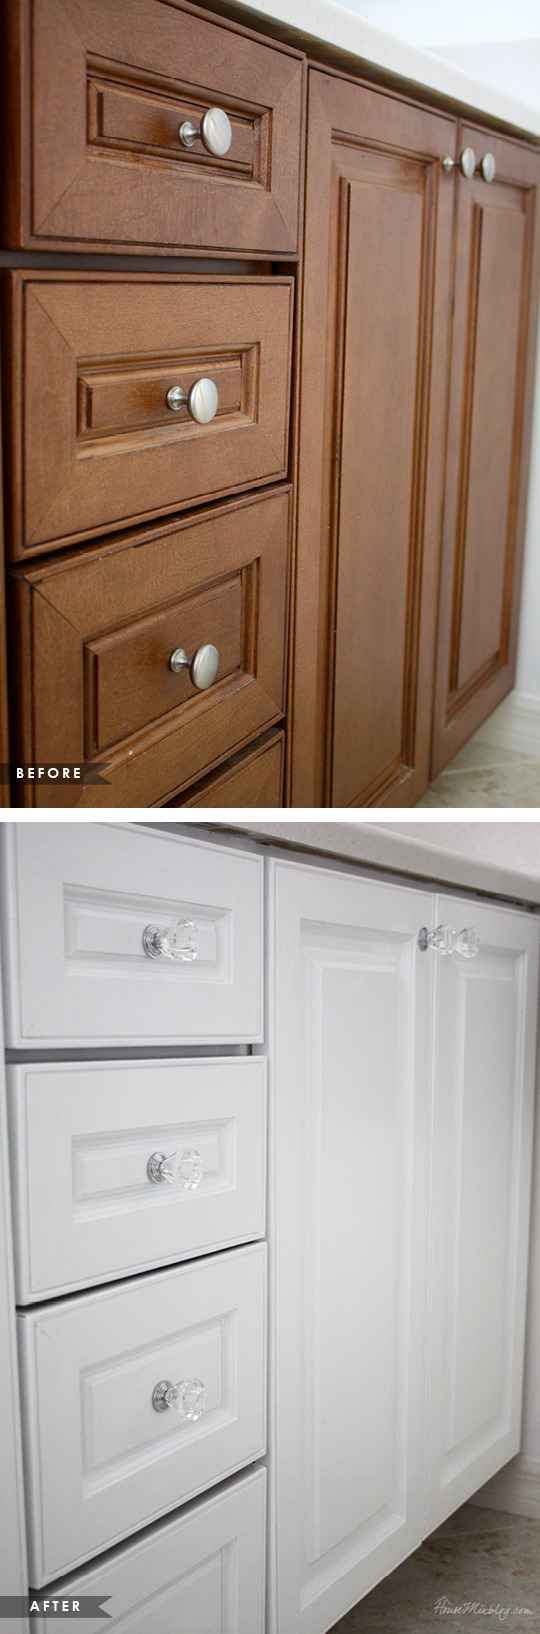 Painted Cabinet Doors Awesome How to Paint Cabinets without Removing Doors